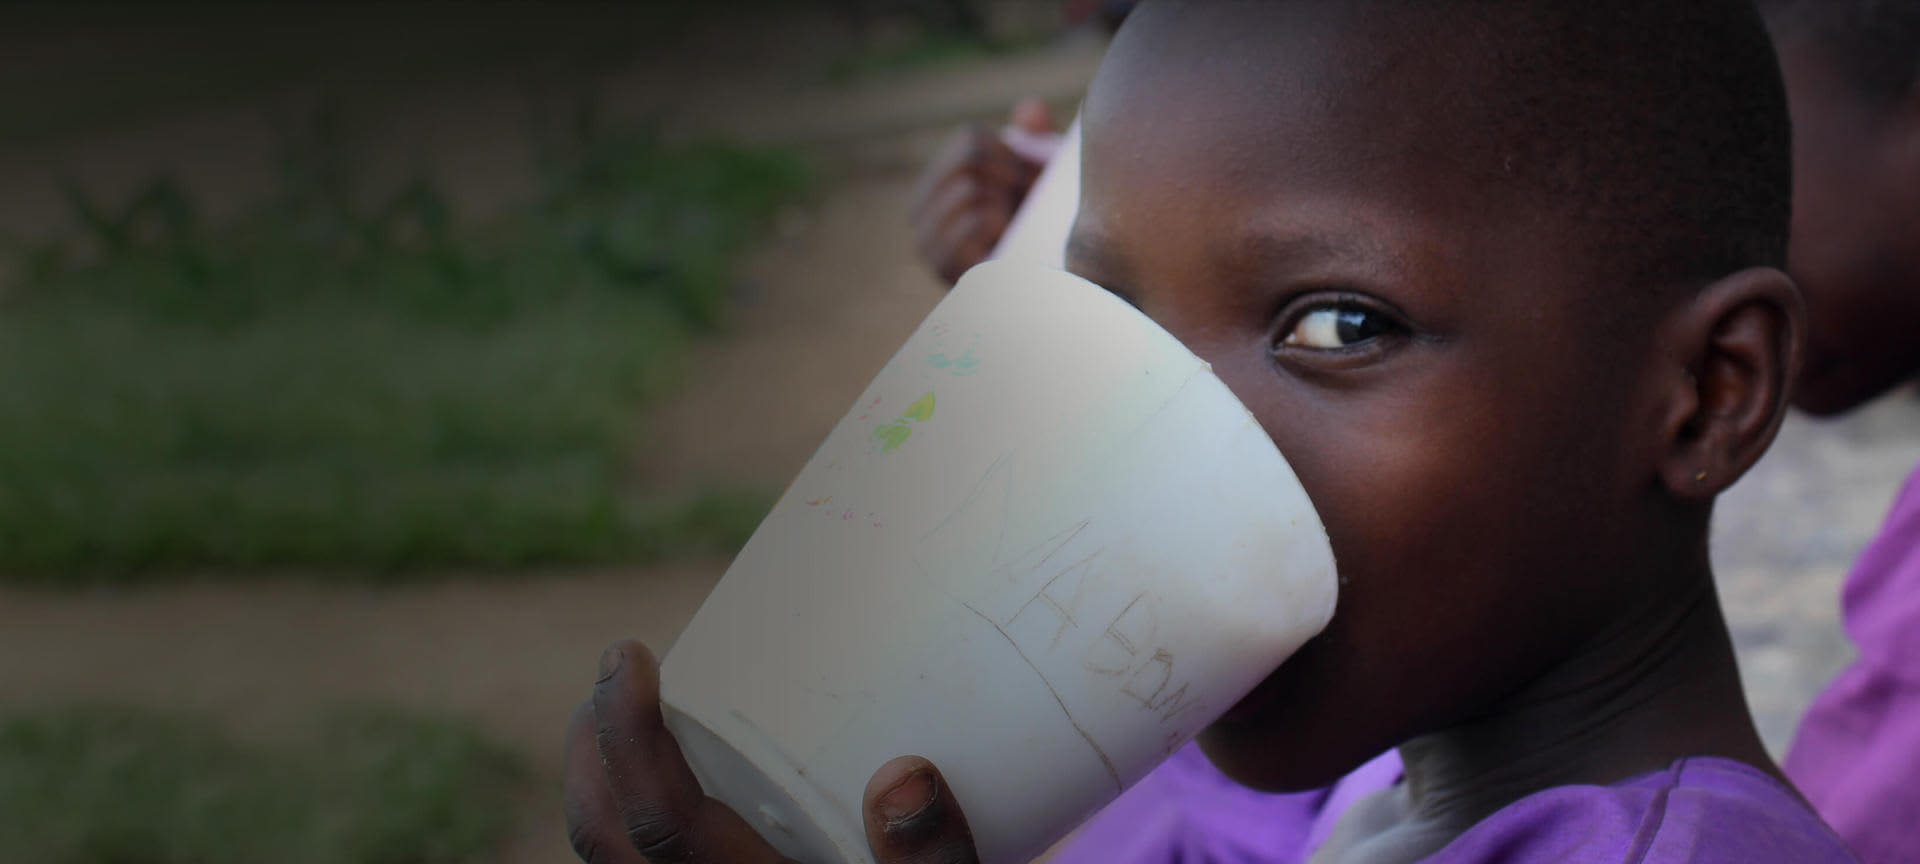 In this article you'll learn how to sponsor a child. This image shows an african school girl eating her lunch